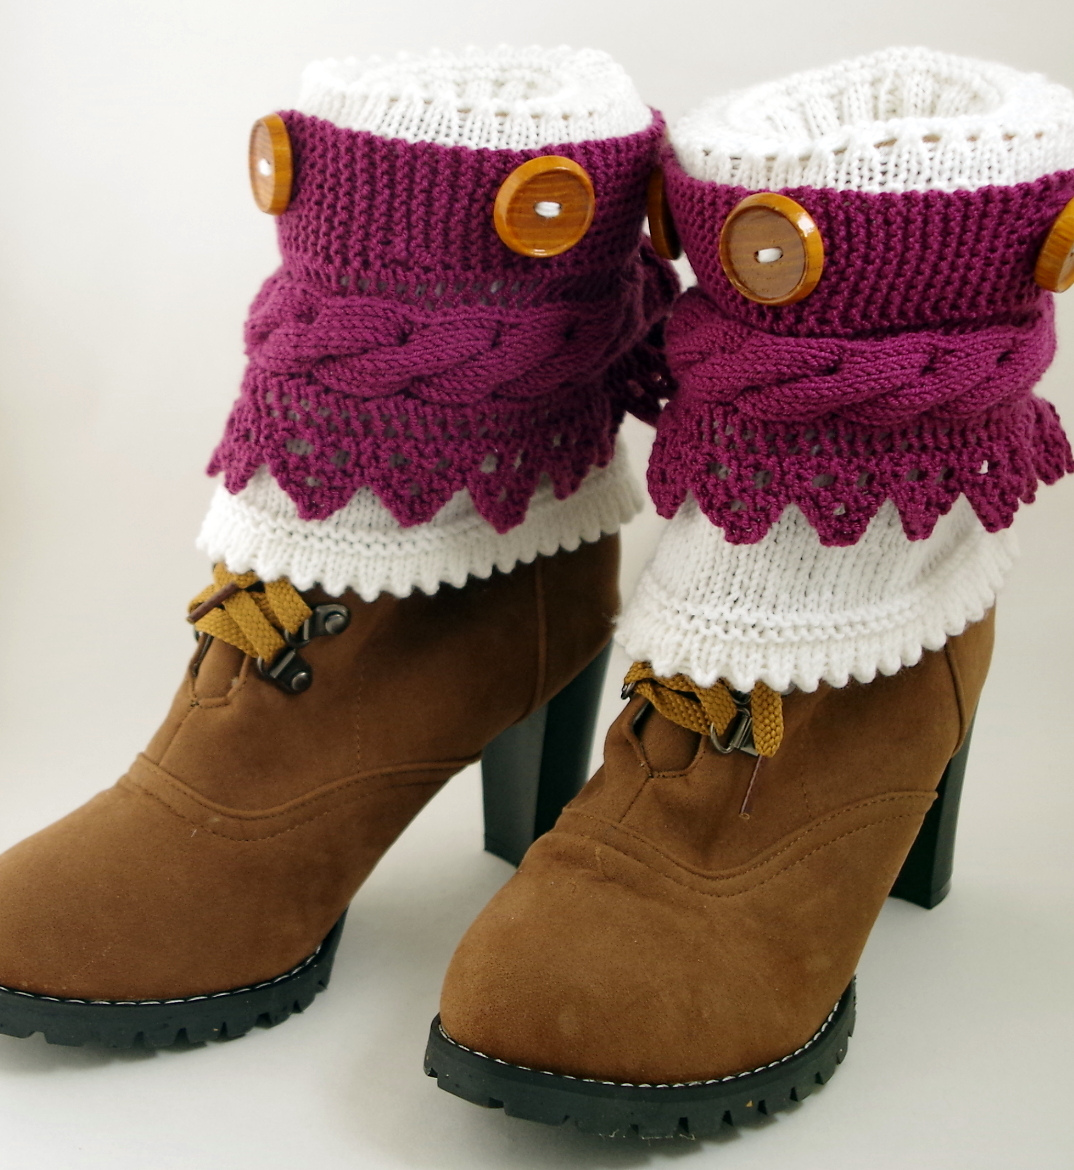 Free Knitting Pattern for 2-in-1 Boot Cuffs With Buttons And Lace